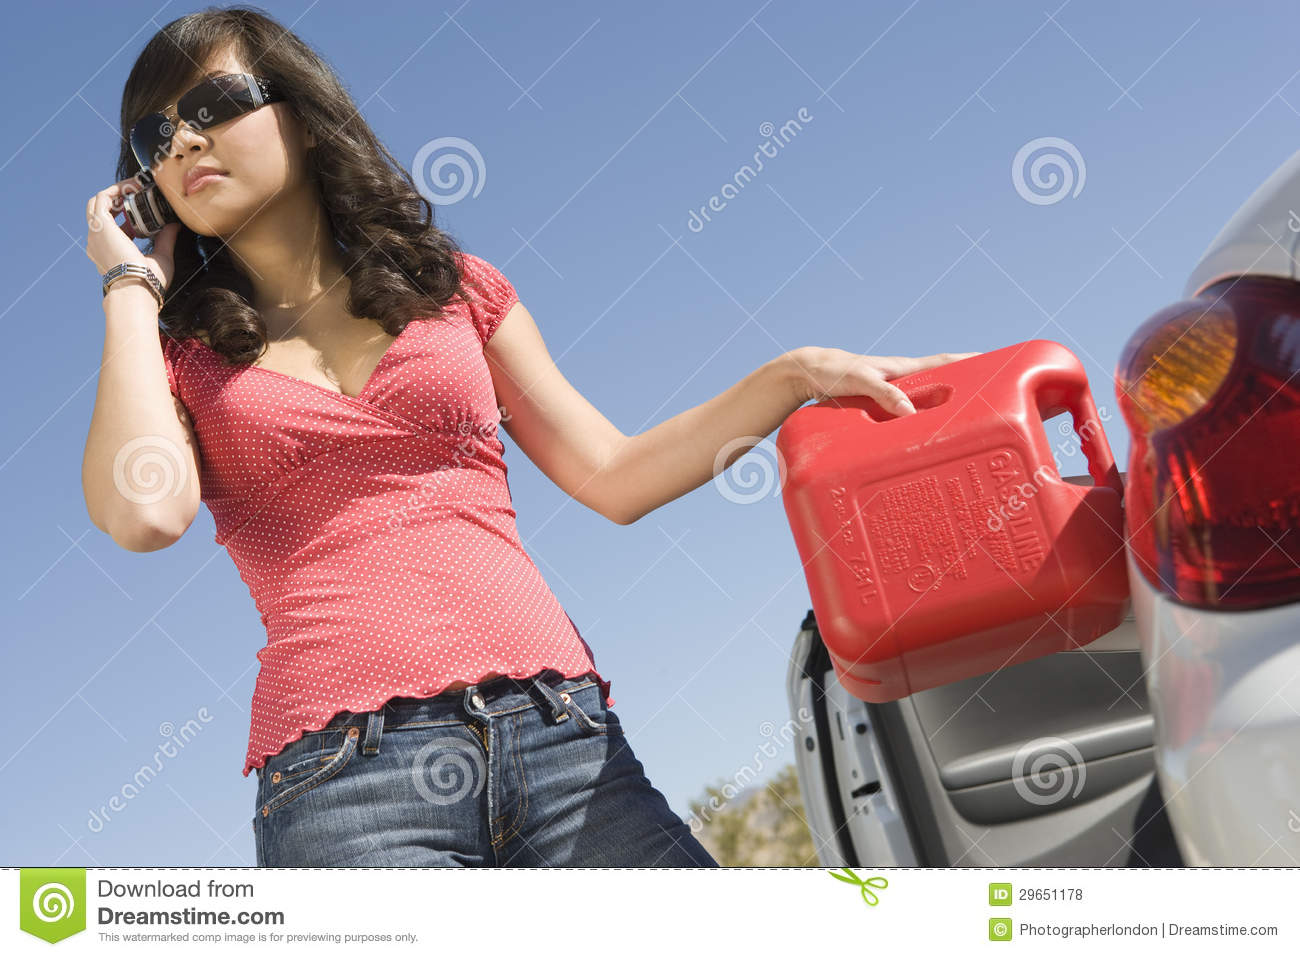 Woman Refueling Her Car While Talking On Cell Phone